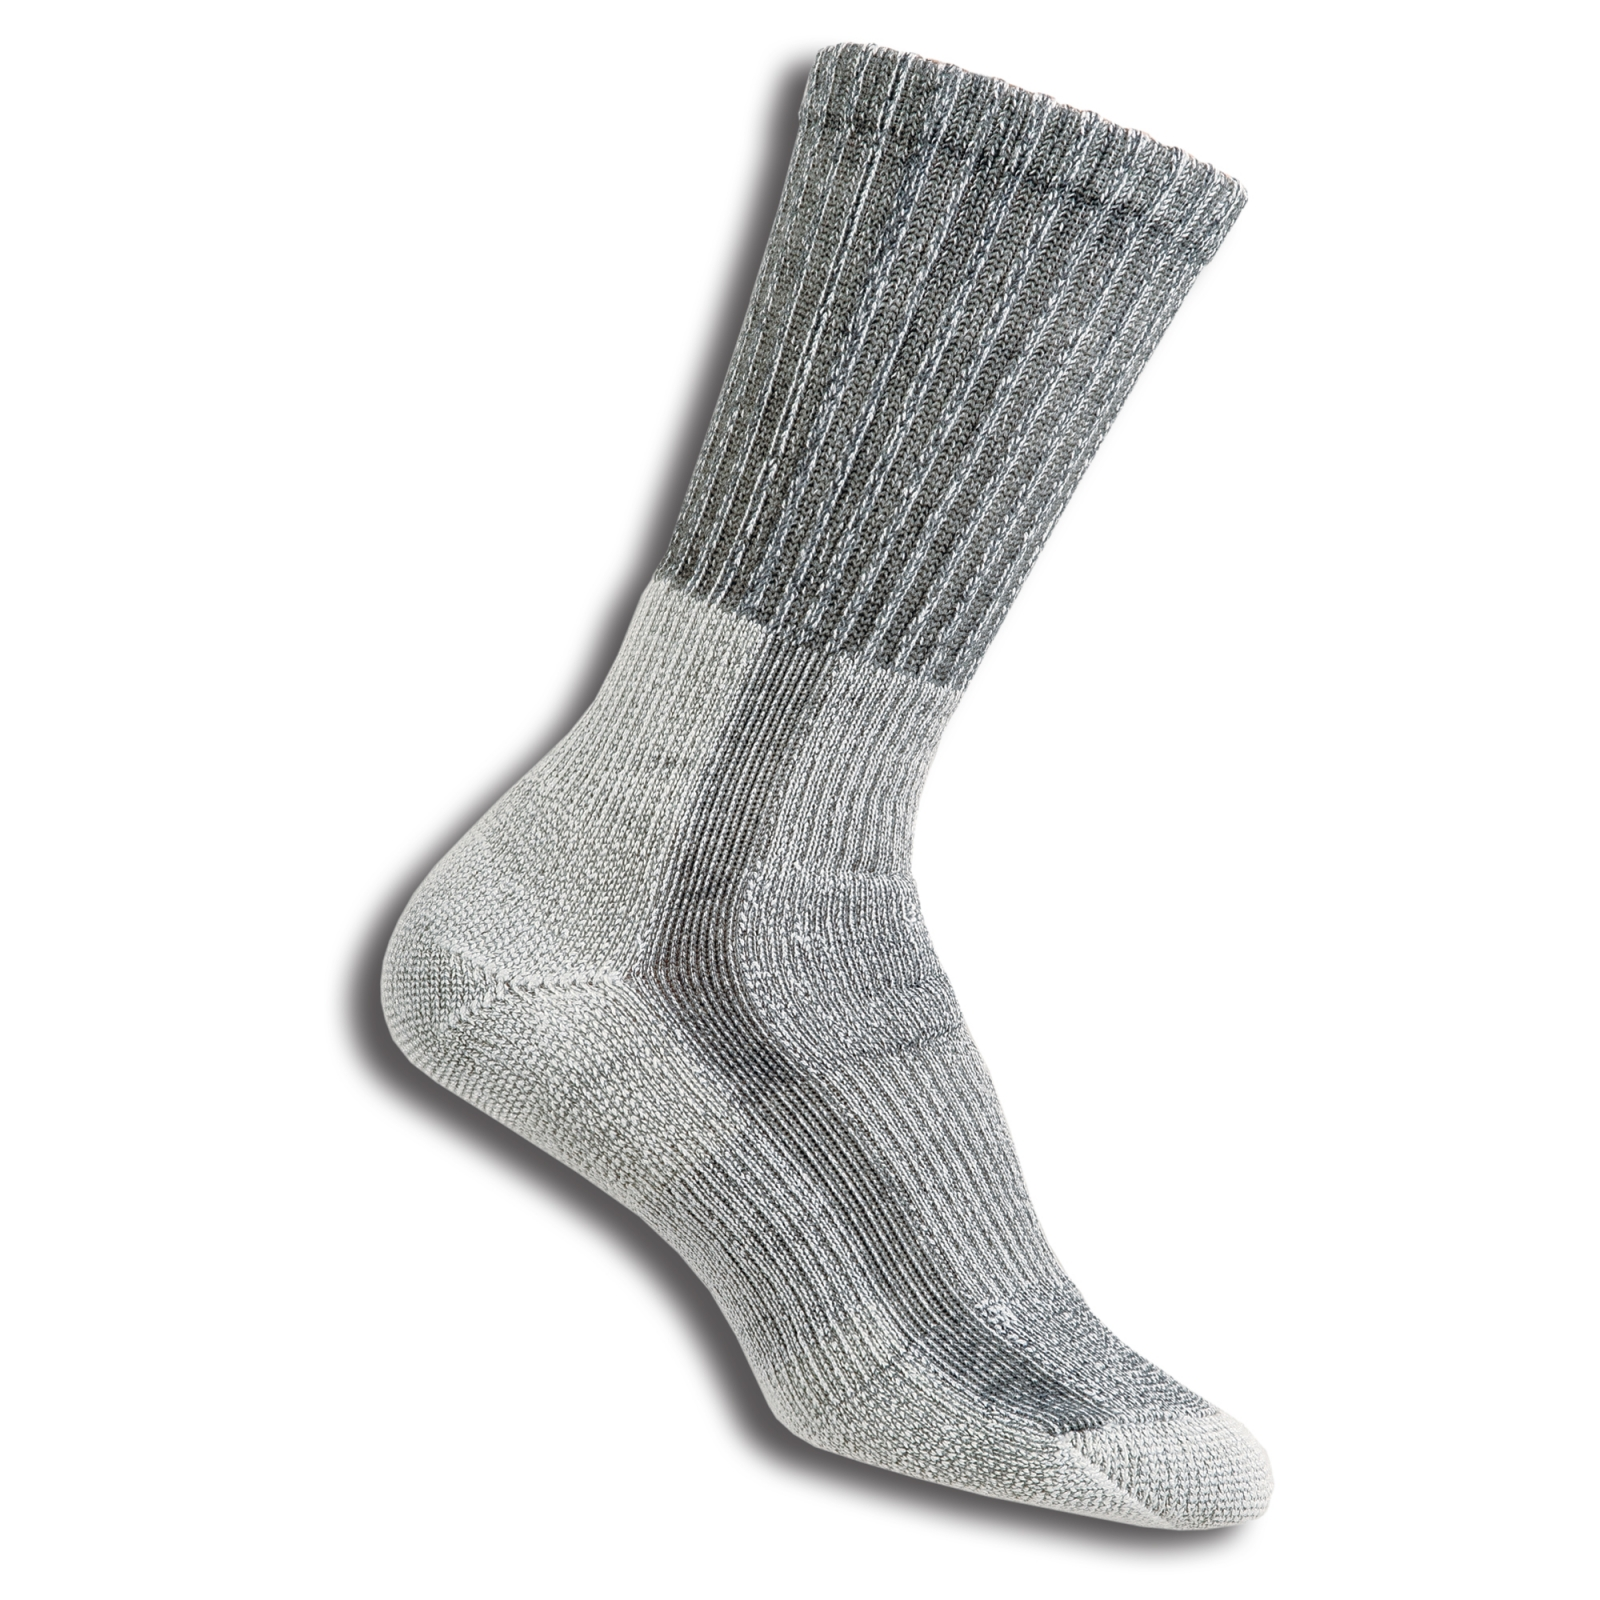 Thorlos Light Hiking Socks - Grey